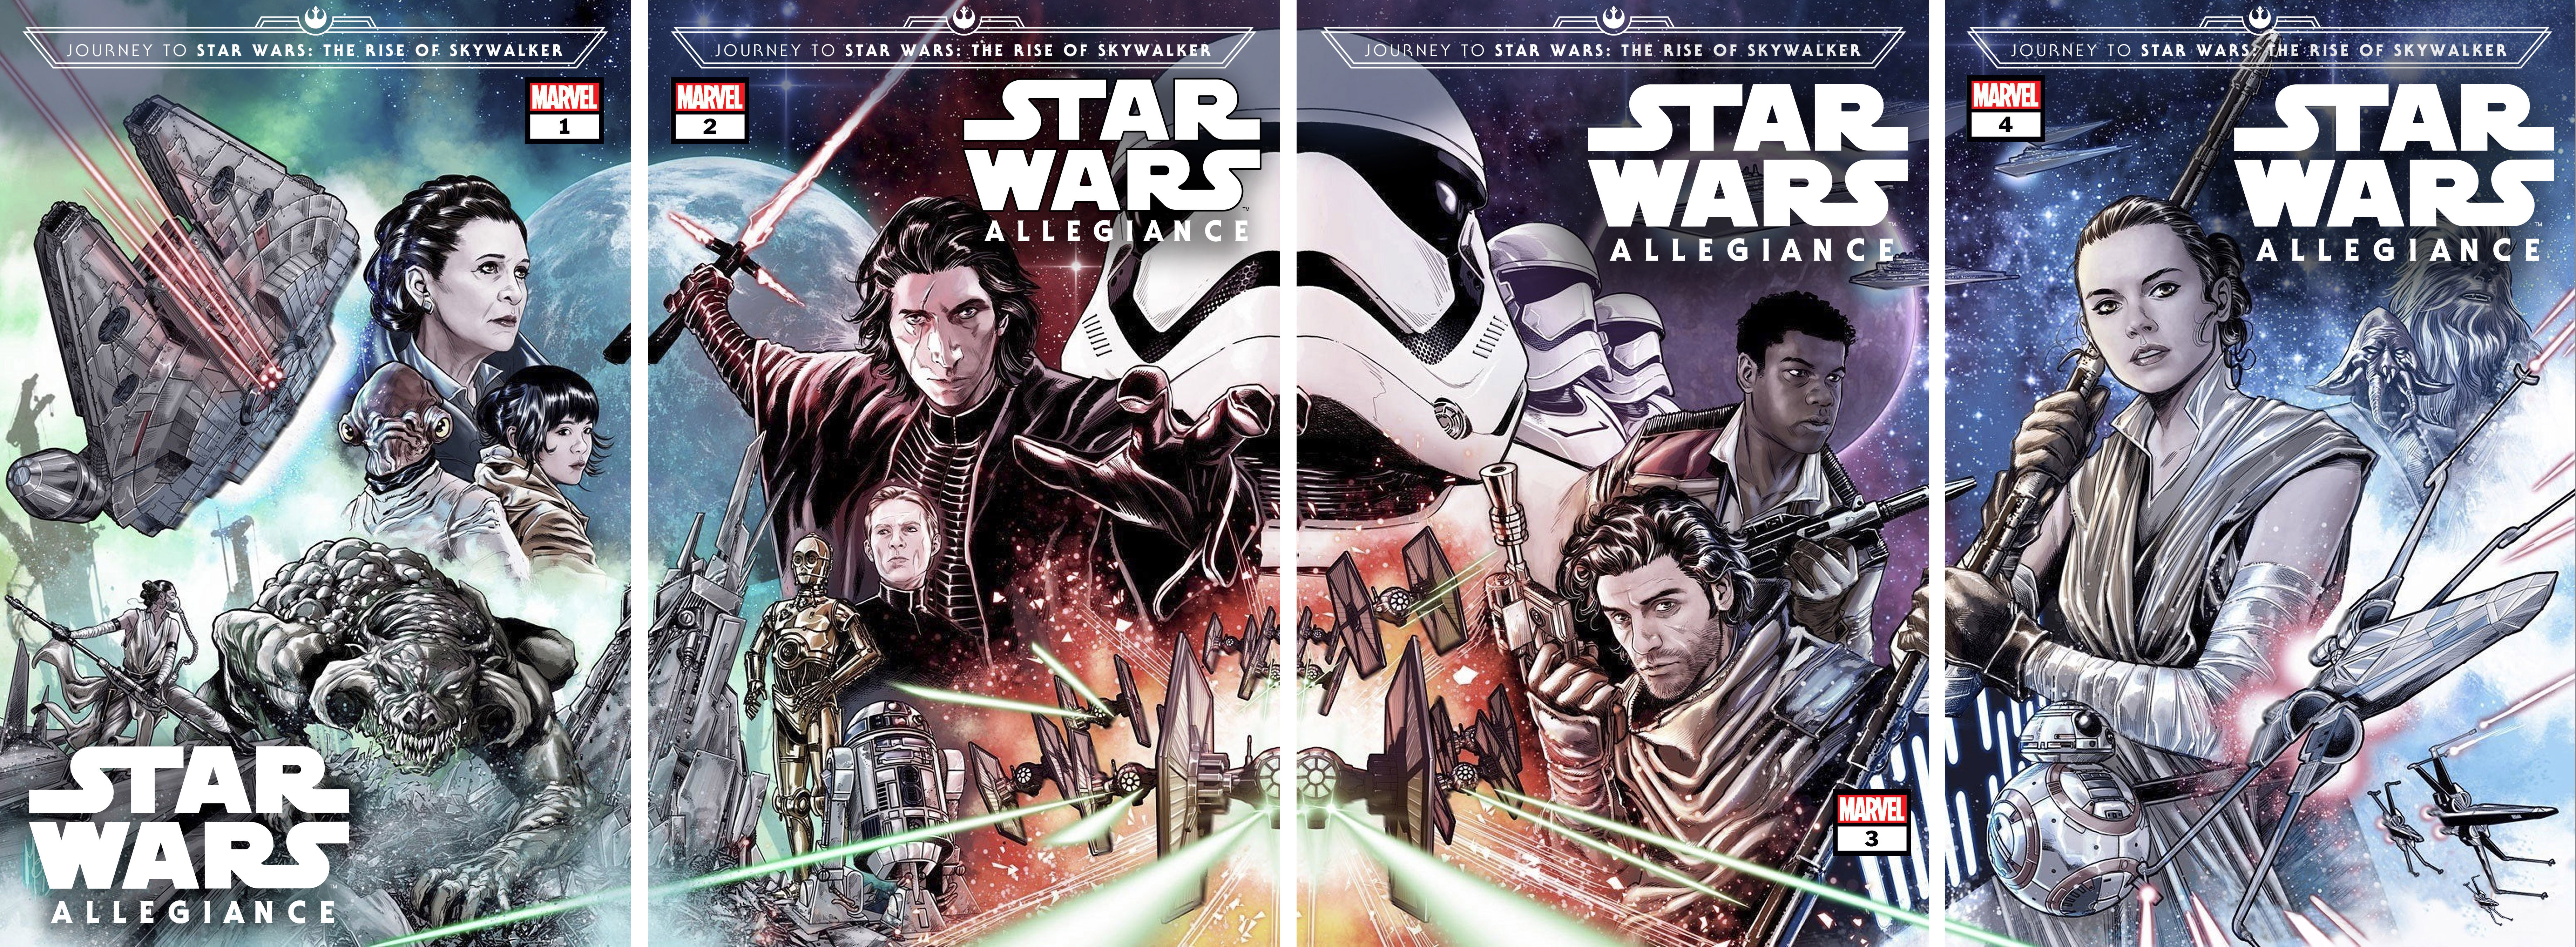 Journey To Star Wars The Rise Of Skywalker Allegiance Marvel Issues 1 To 4 Geek Carl